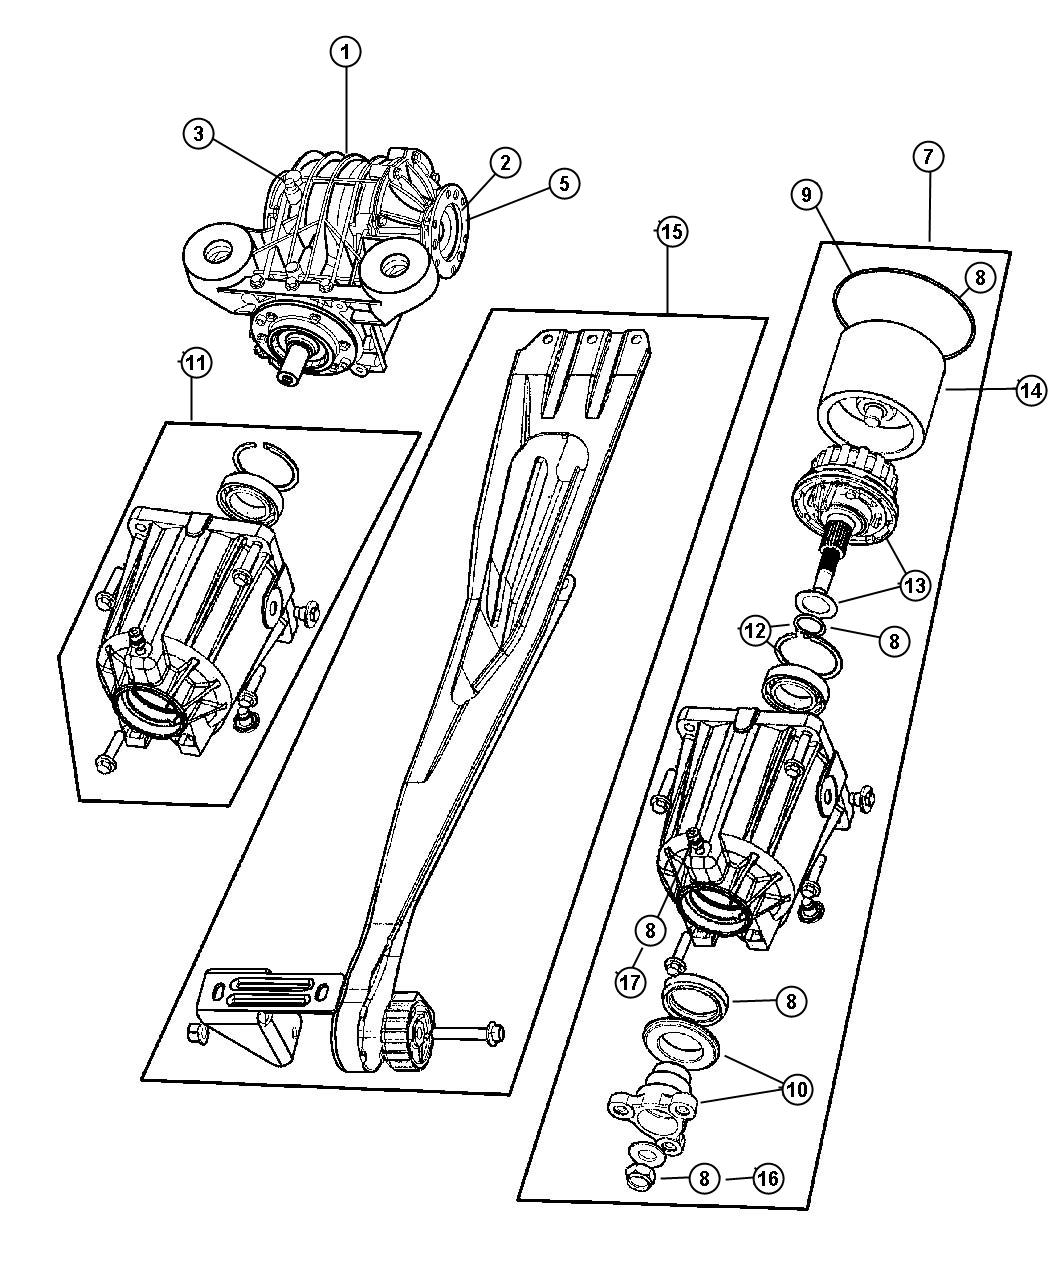 2012 dodge journey rear suspension diagram